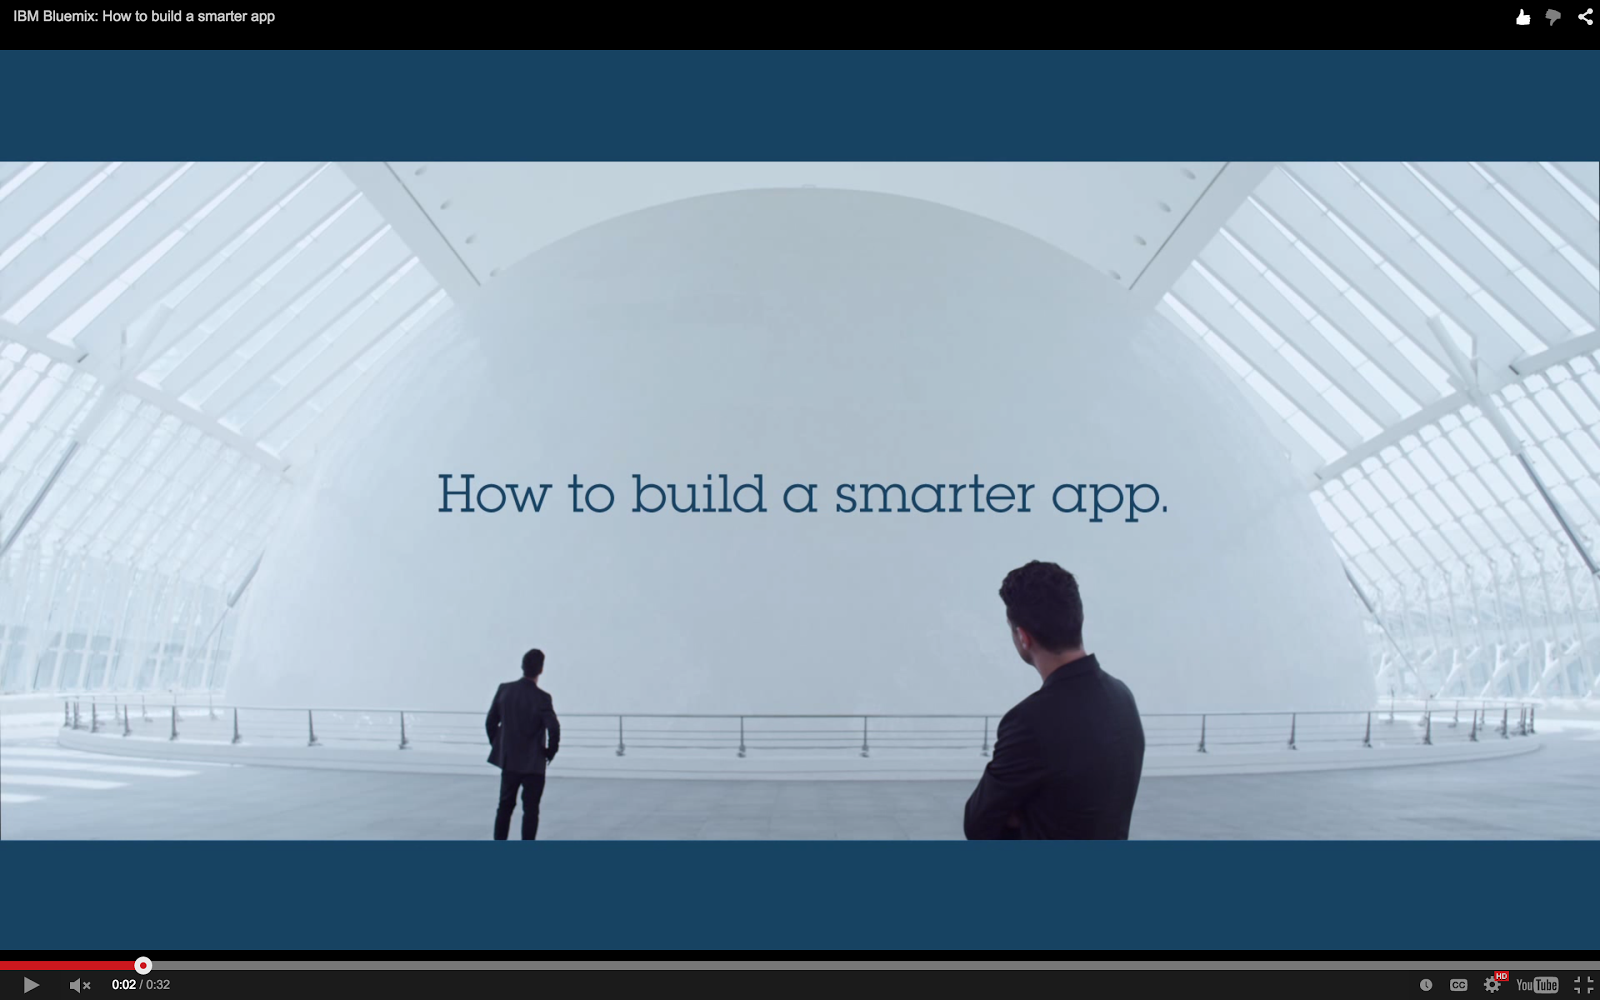 Bluemix YouTube: How to Build a Smarter App